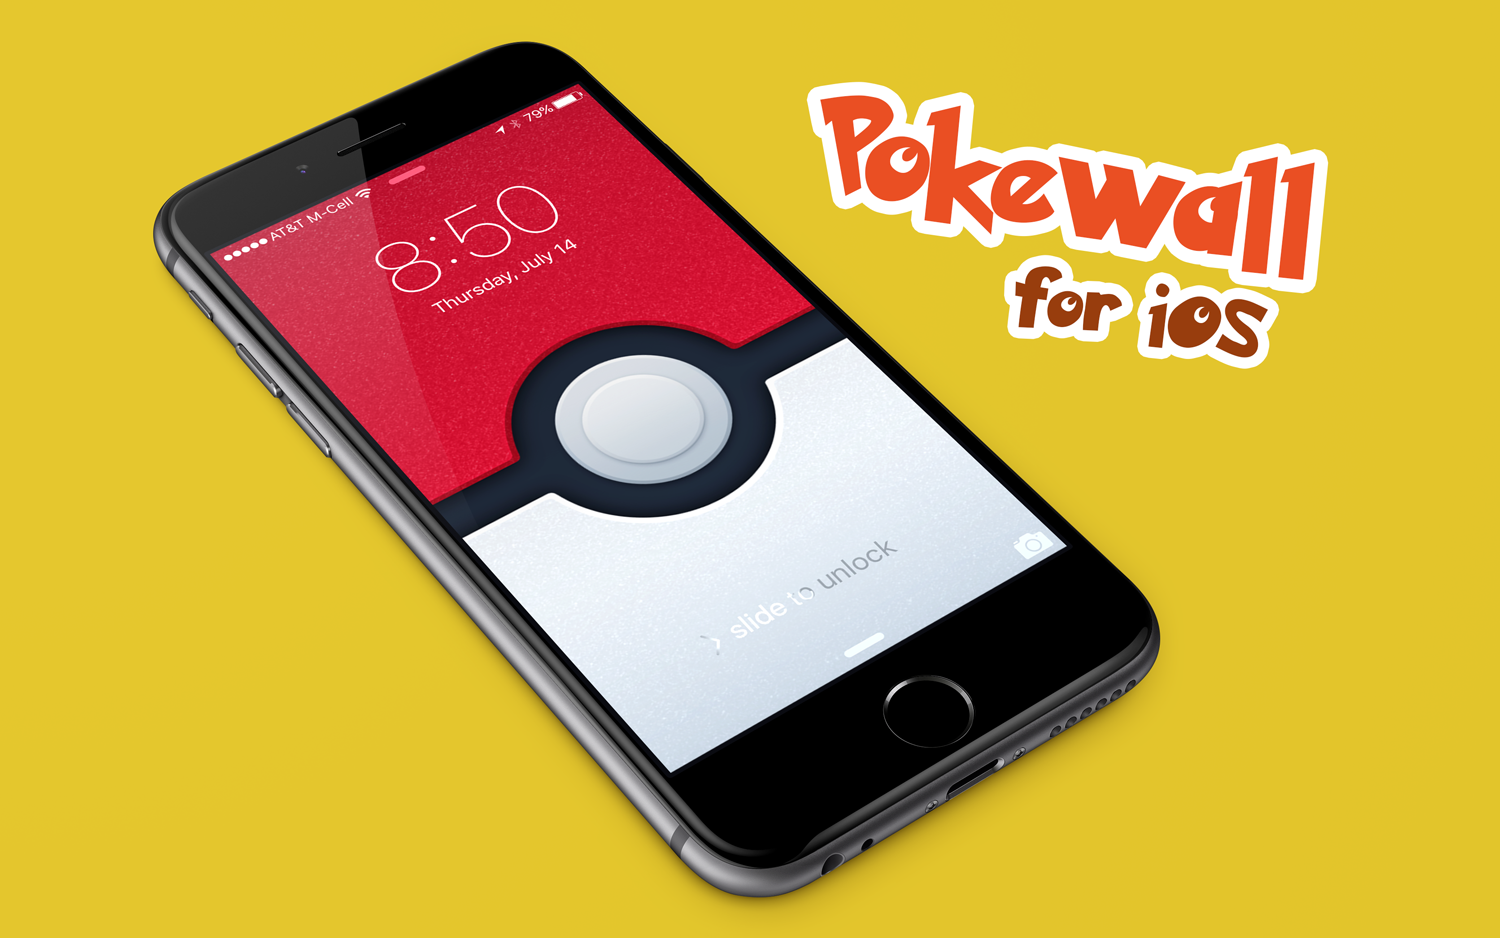 Pokewall Wallpaper on an iPhone 6